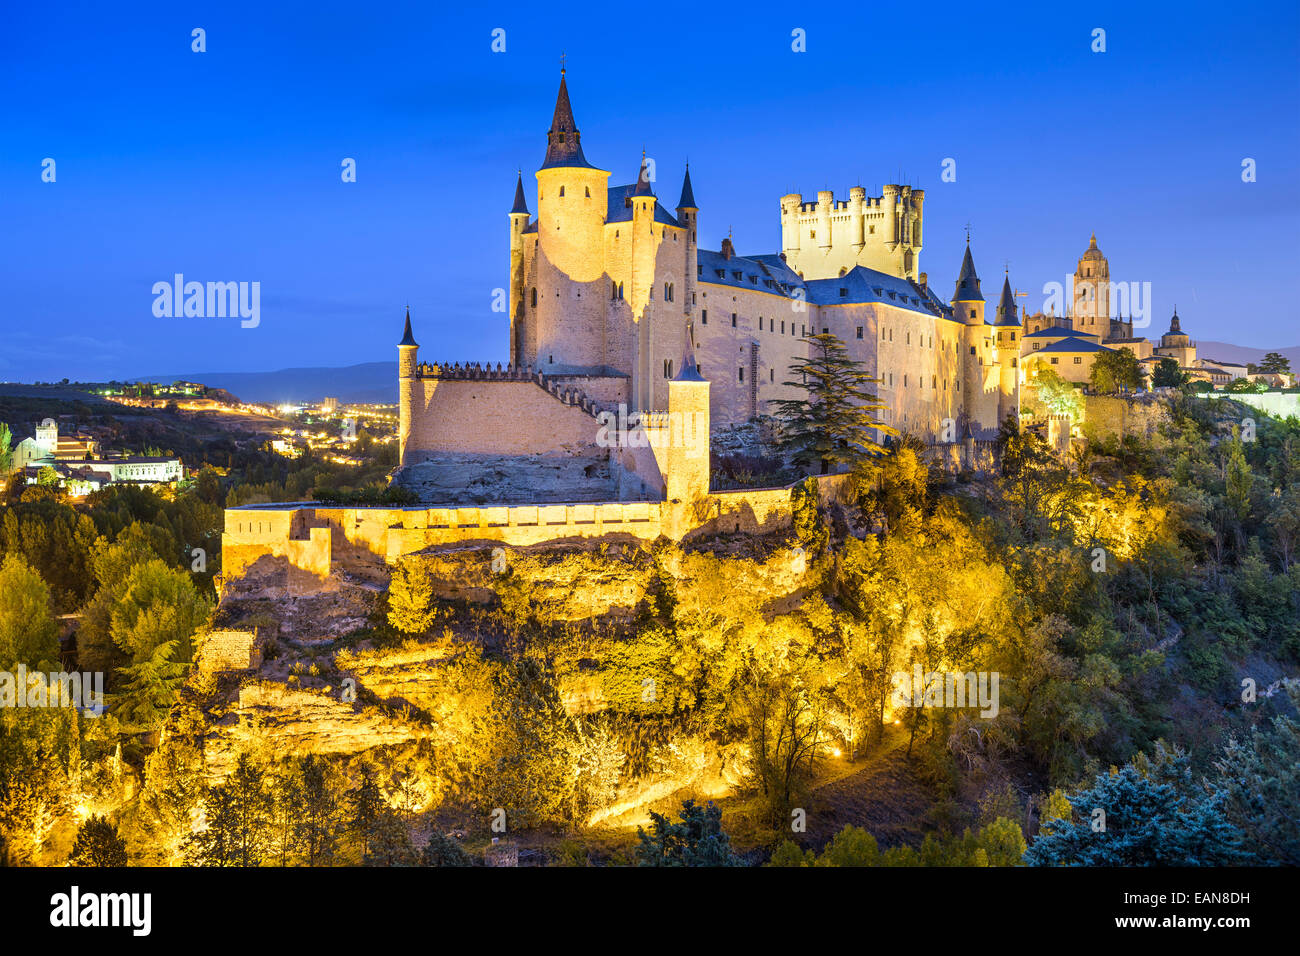 Segovia, Spain town skyline with the Alcazar at night. - Stock Image